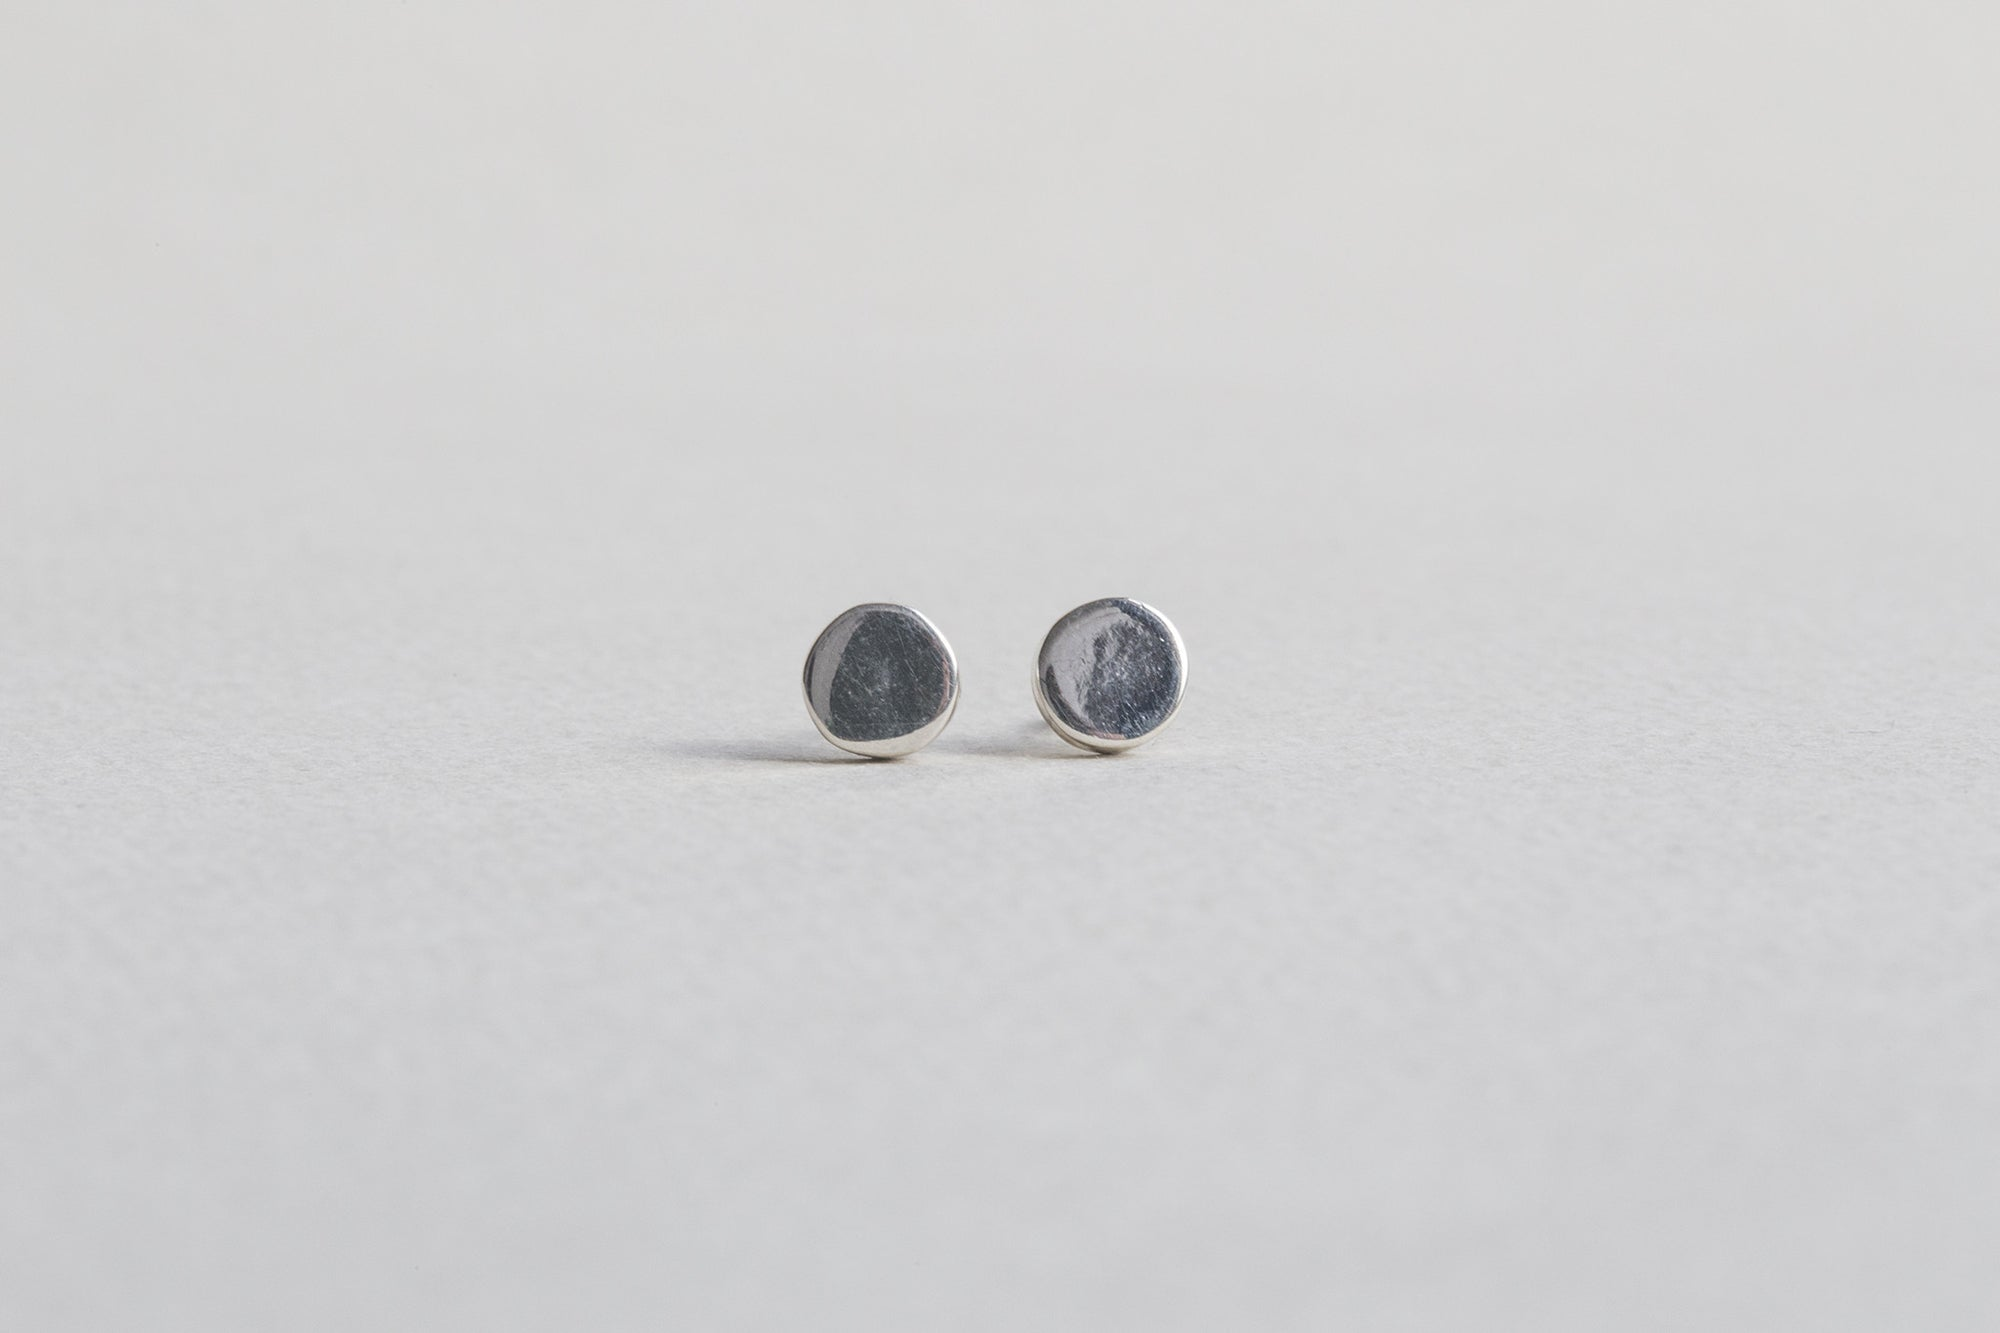 Silver Cylinder Stud Earrings